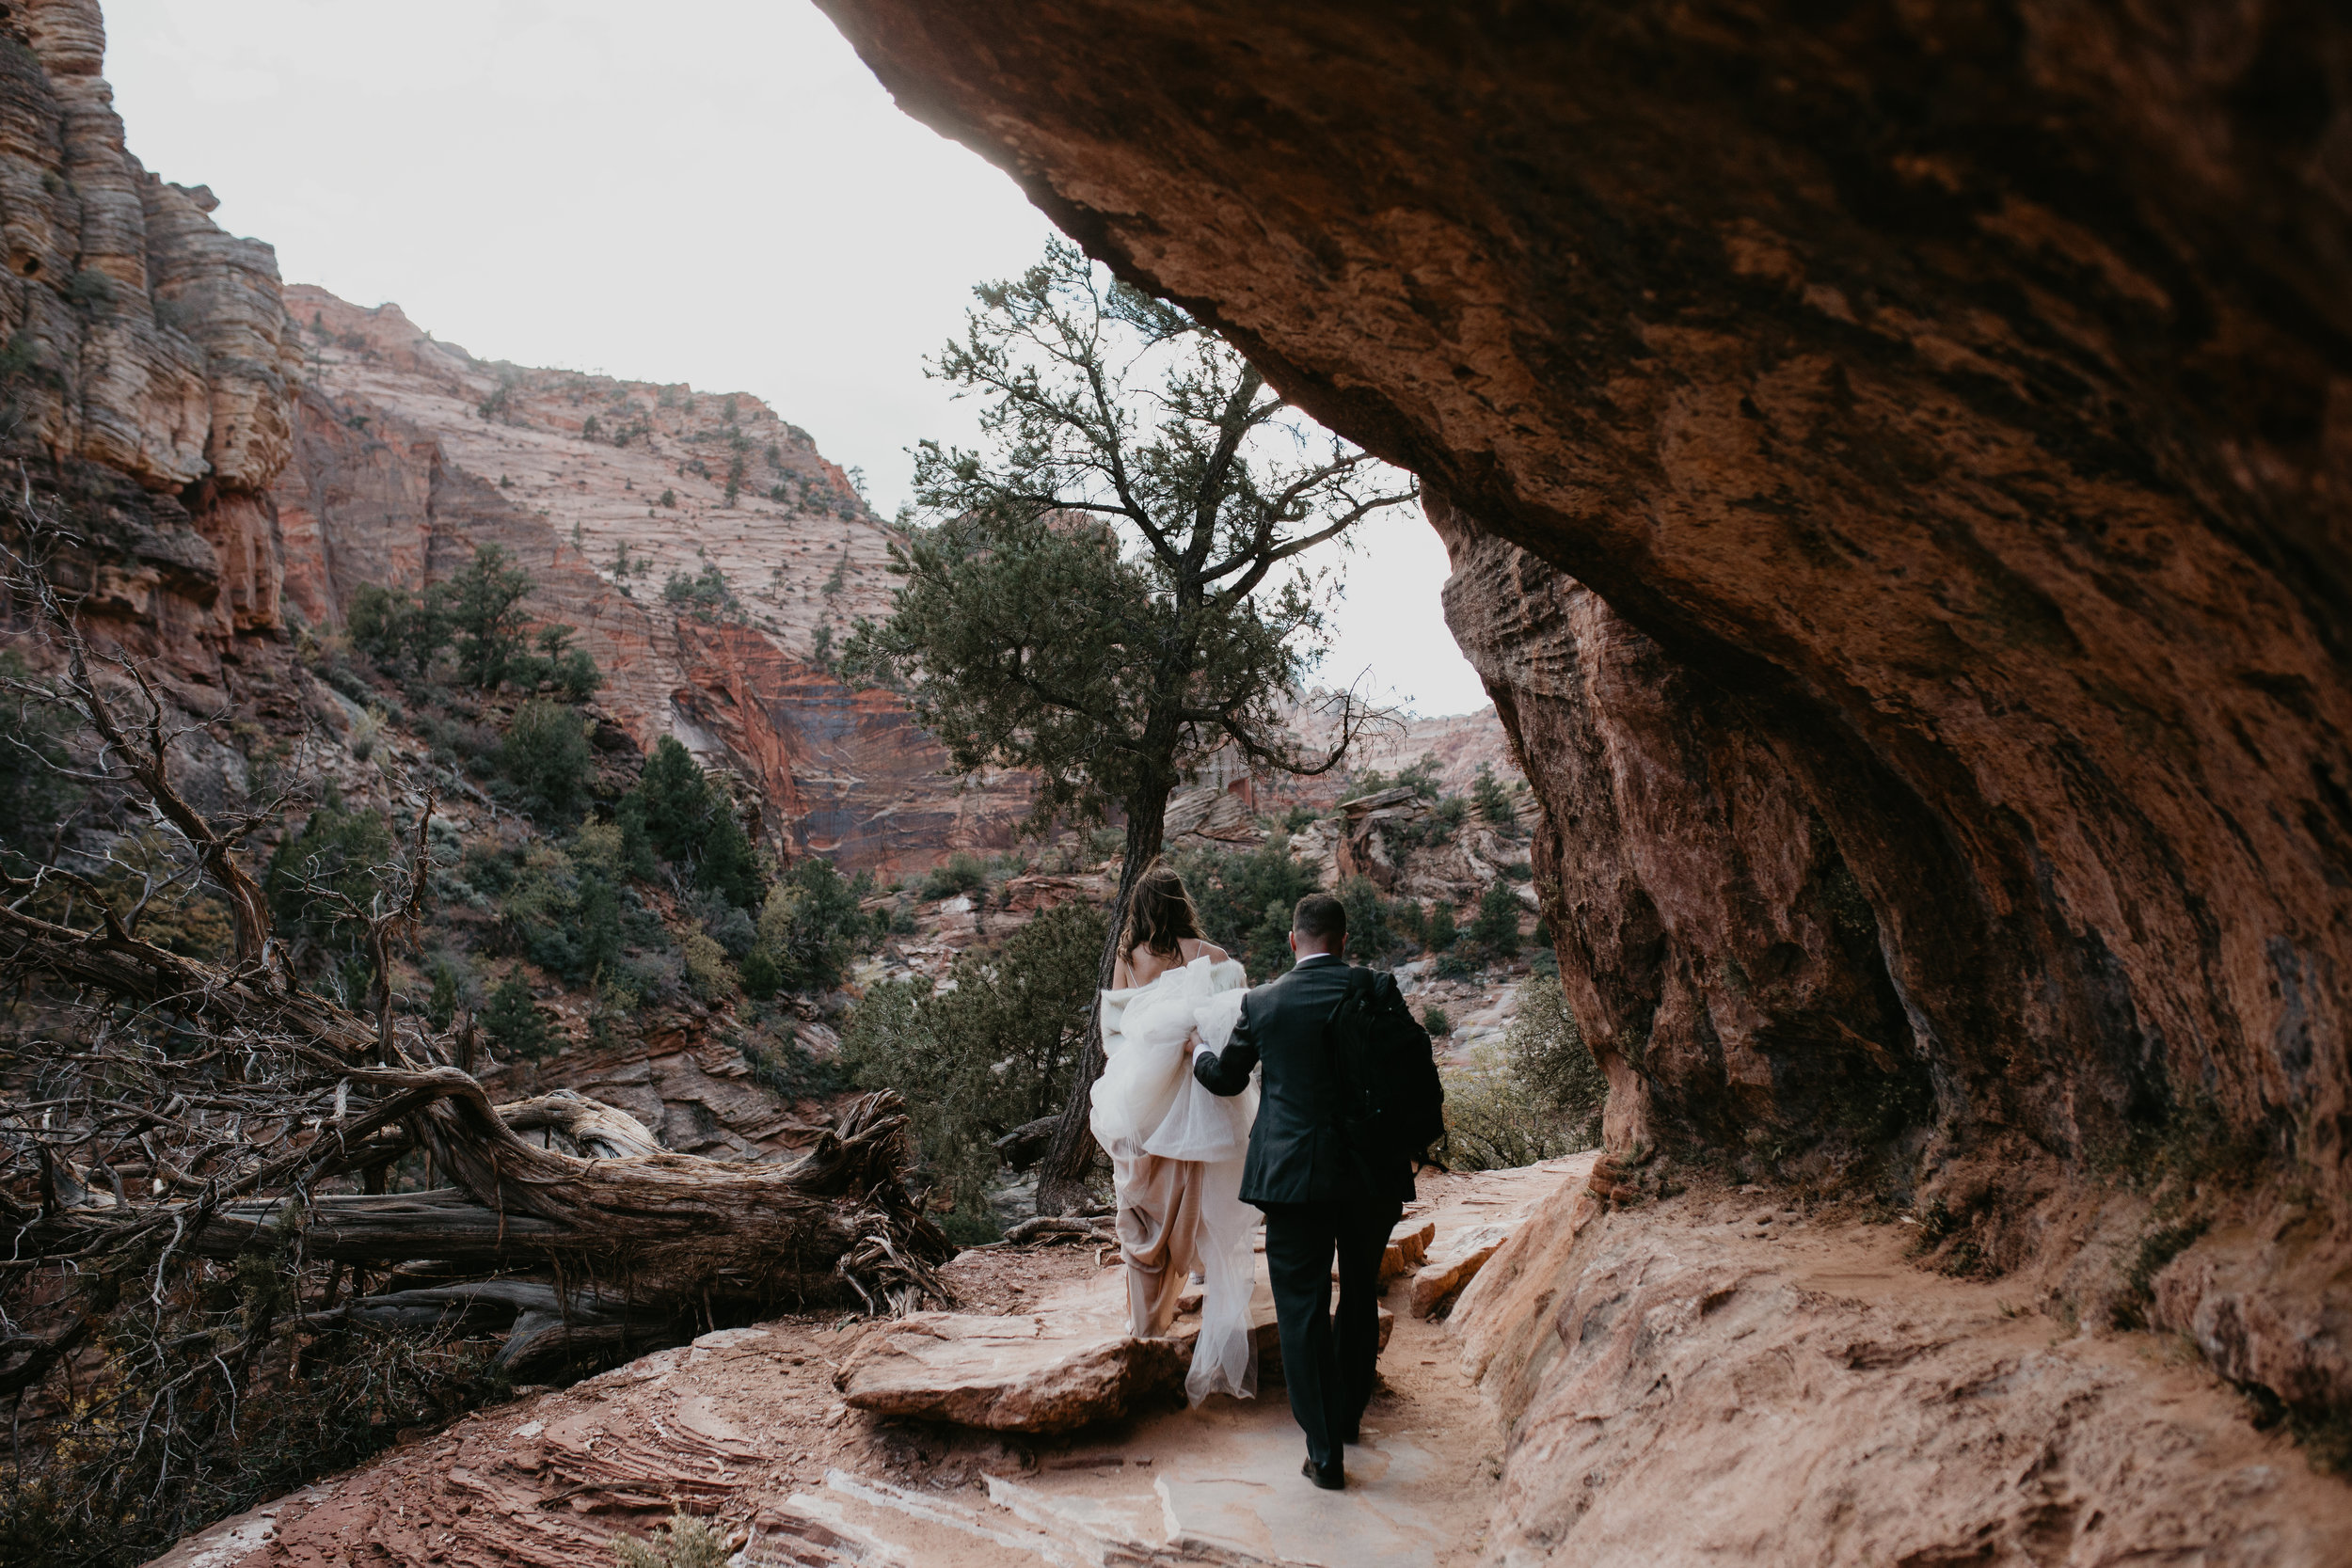 nicole-daacke-photography-zion-national-park-elopement-photographer-canyon-overlook-trail-elope-hiking-adventure-wedding-photos-fall-utah-red-rock-canyon-stgeorge-eloping-photographer-27.jpg